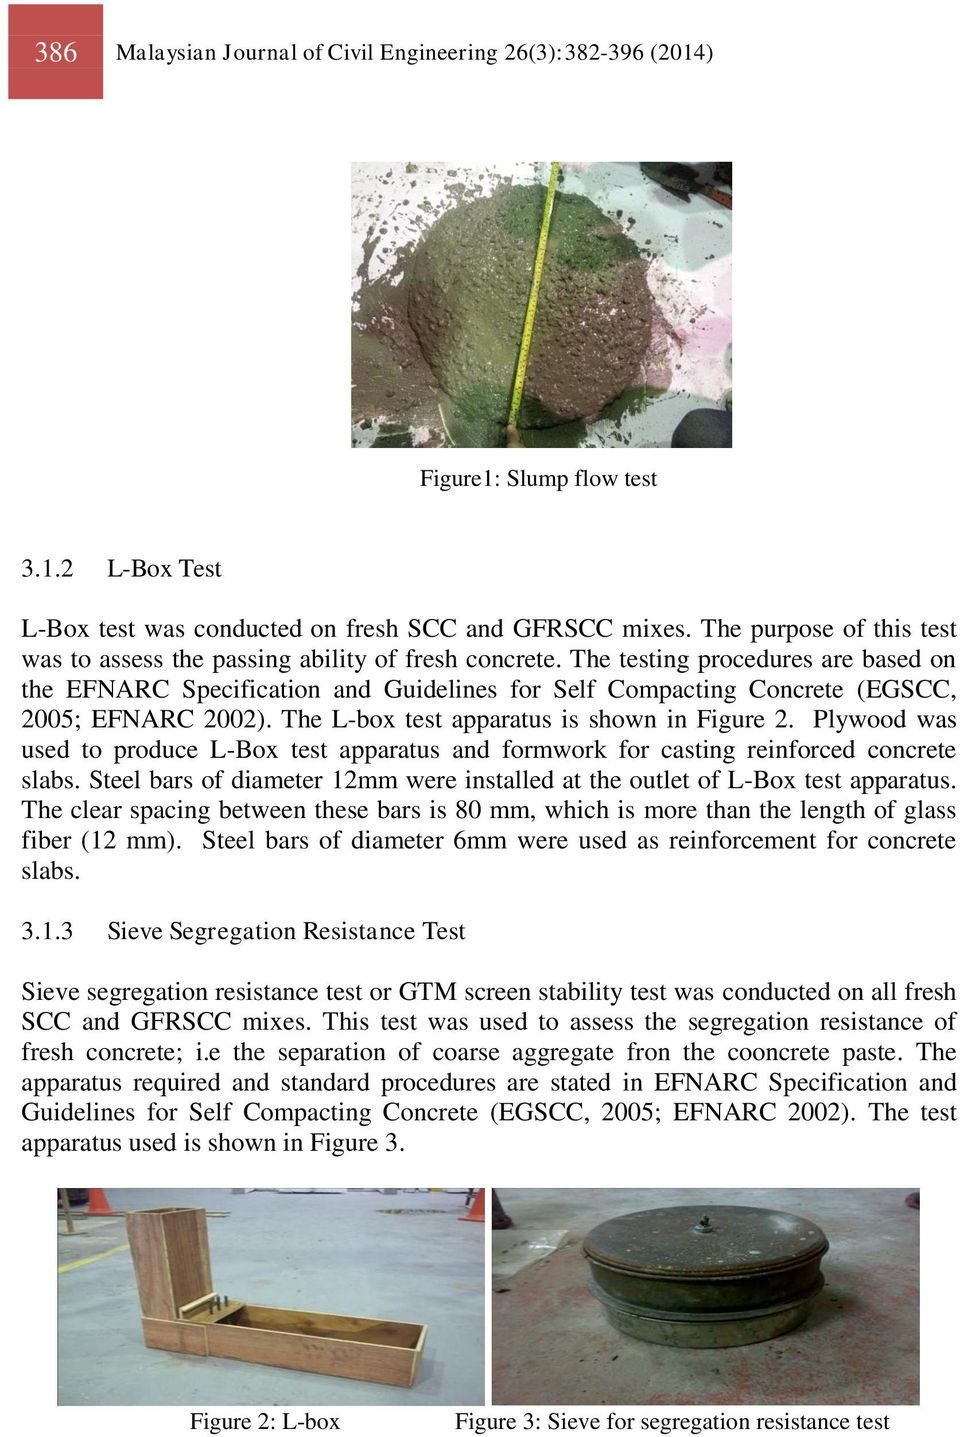 The testing procedures are based on the EFNARC Specification and Guidelines for Self Compacting Concrete (EGSCC, 2005; EFNARC 2002). The L-box test apparatus is shown in Figure 2.